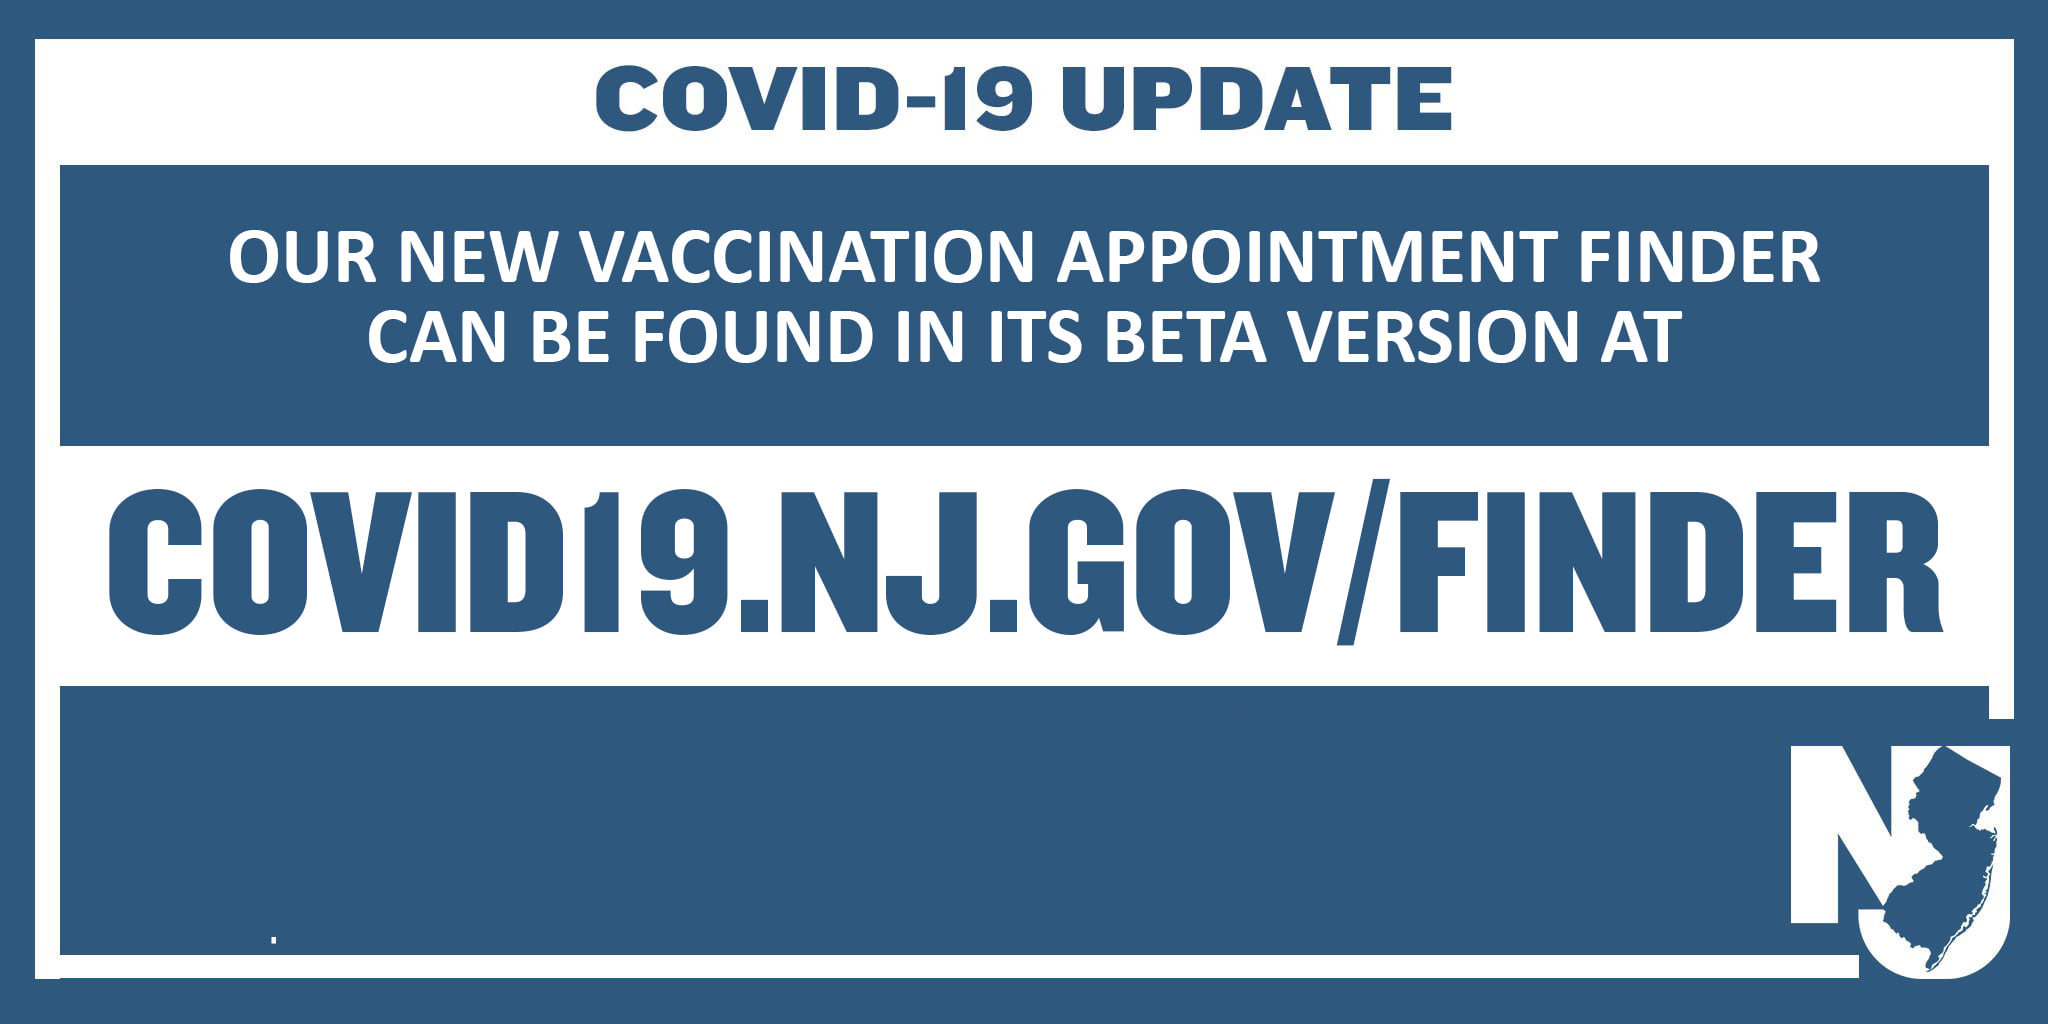 Our new vaccination appointment finder can be found at covid19.nj.gov/finder